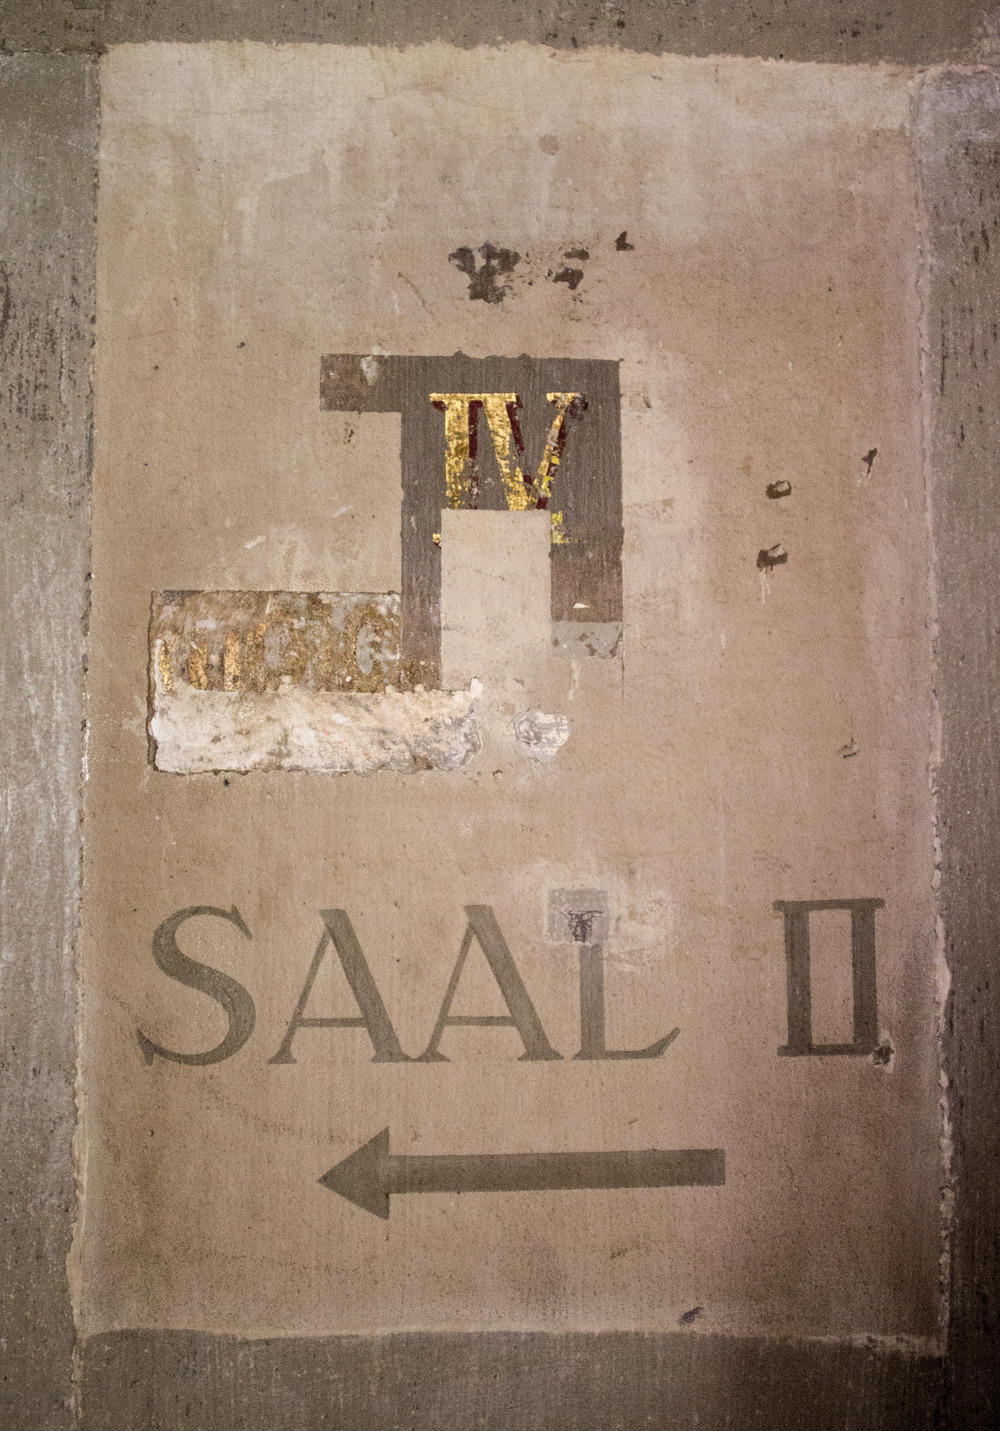 Vestige of the 19th century wayfinding scheme in the Neues Museum, Berlin